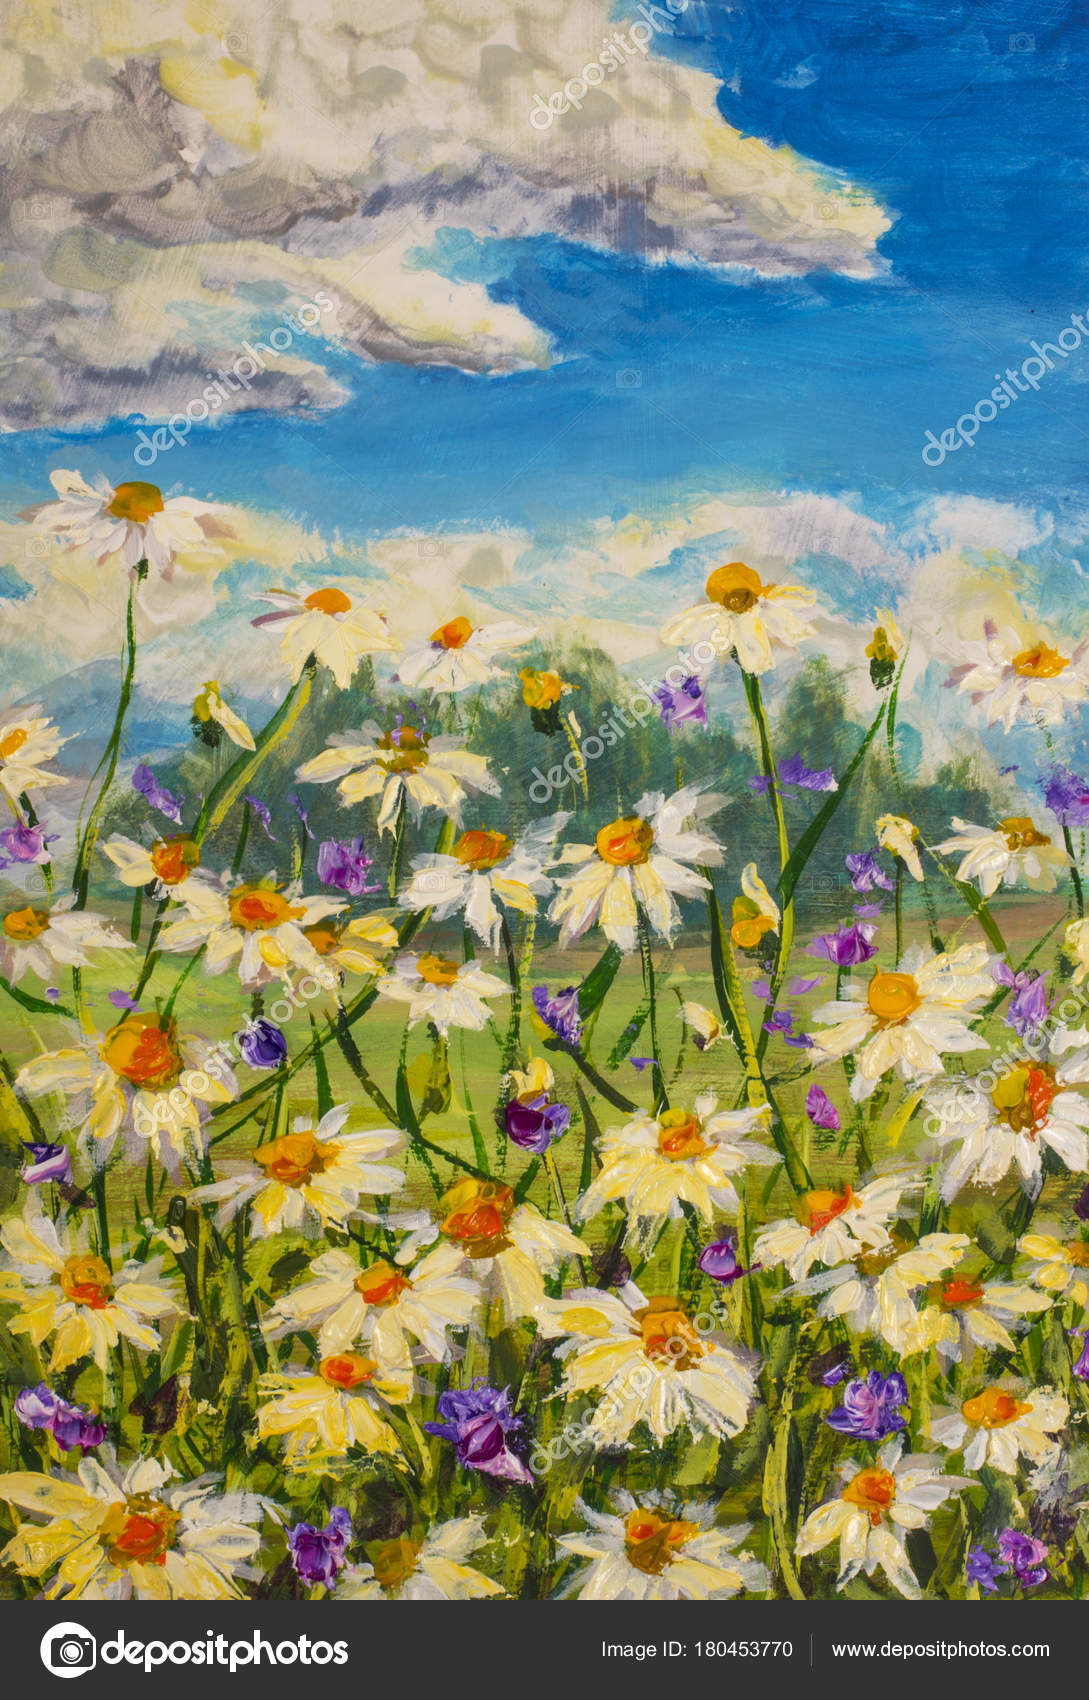 Original Oil Painting White Daisies Flowers Beautiful Field Flowers